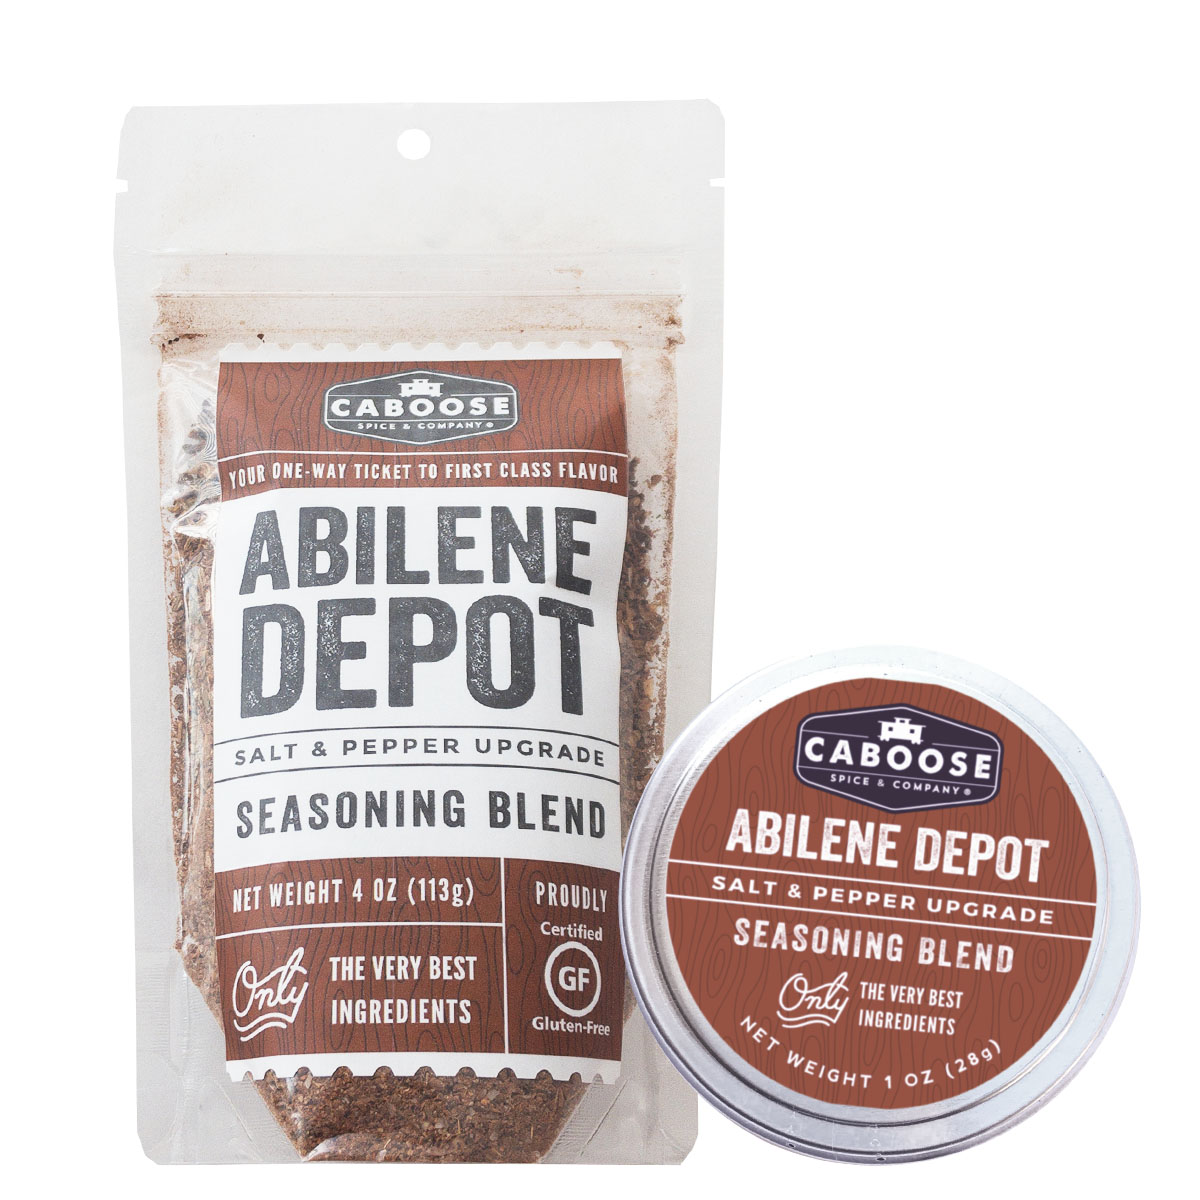 Caboose Spice & Co. Abilene Depot Seasoning Blend